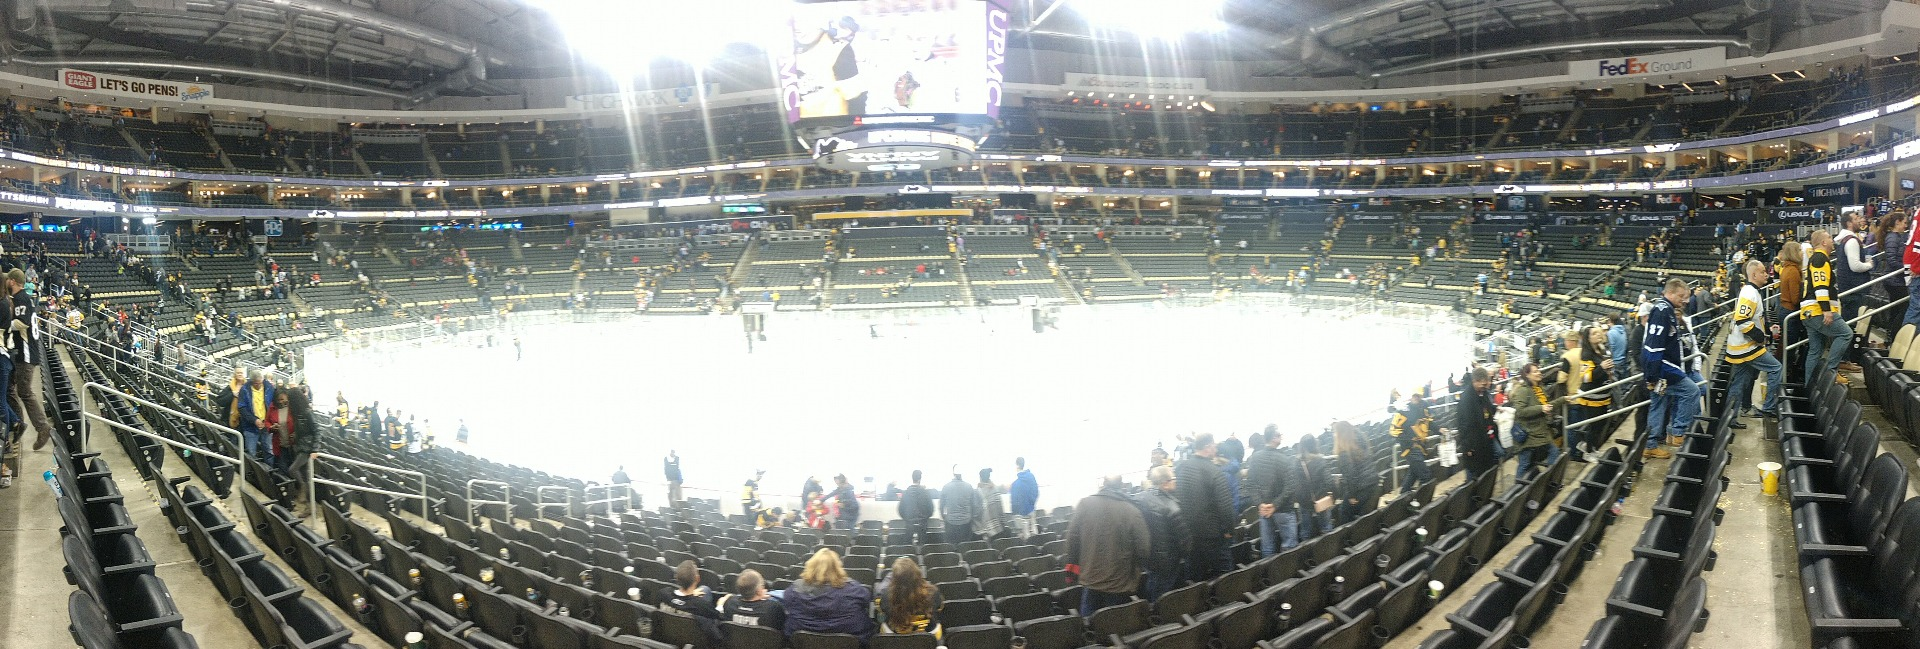 PPG Paints Arena Section 112 Row R Seat 11